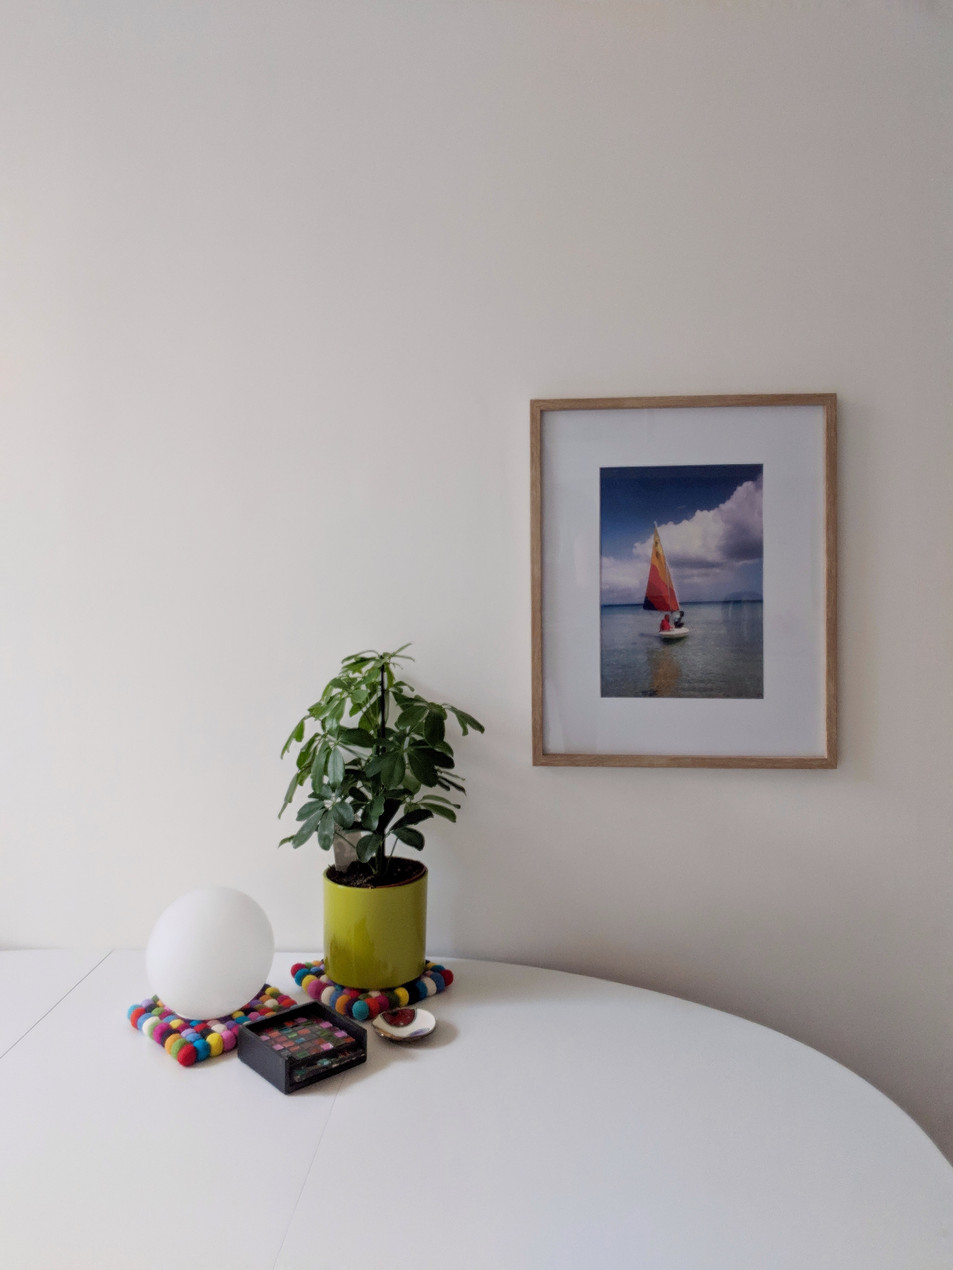 White table in a white room with a plant and a framed print on the wall